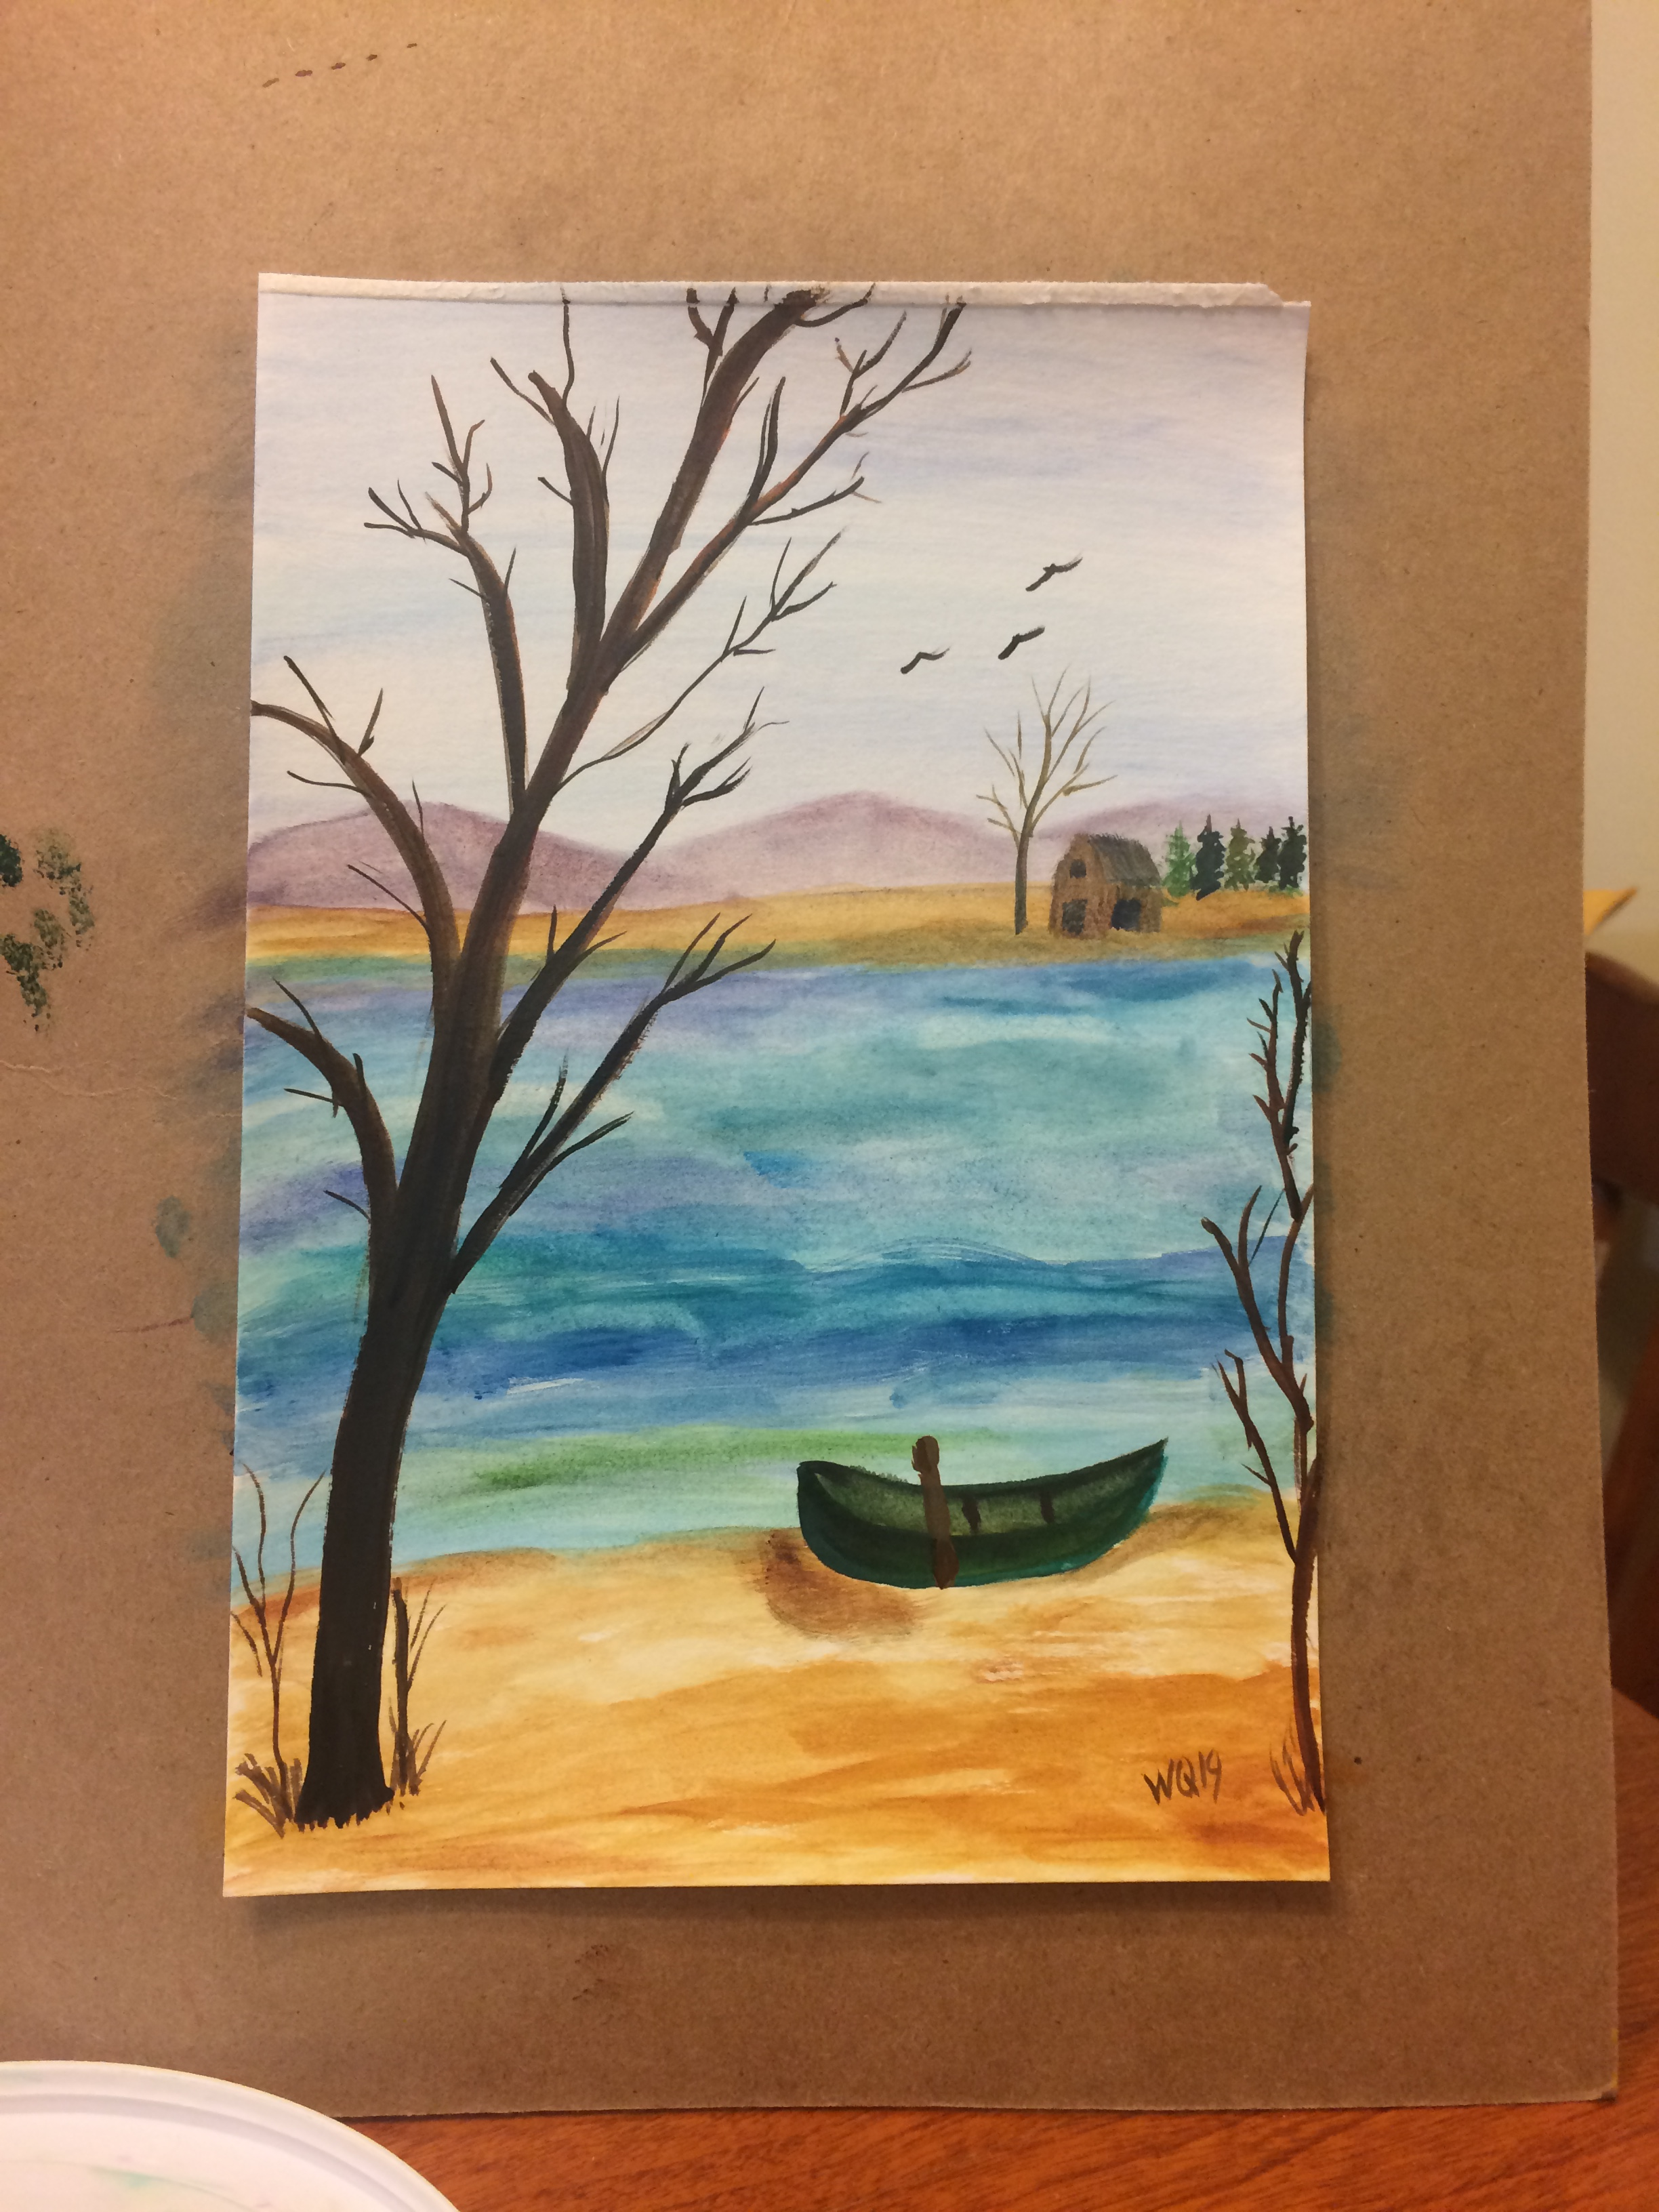 watercolour painting, landscape: boat on shore with tree. cabin across the river.